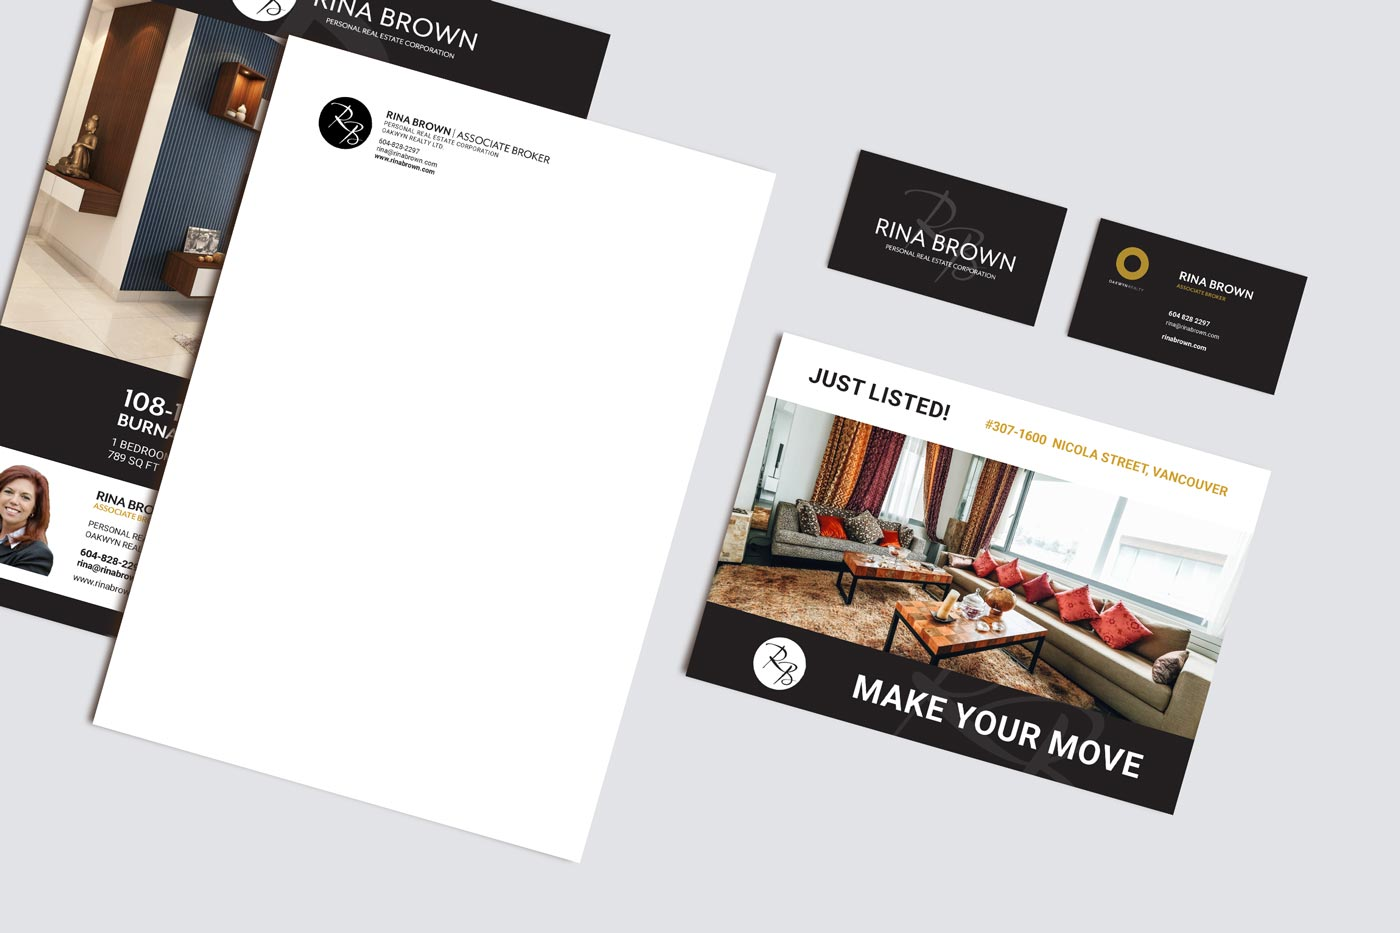 logo, letterhead and postcard design for real estate agents